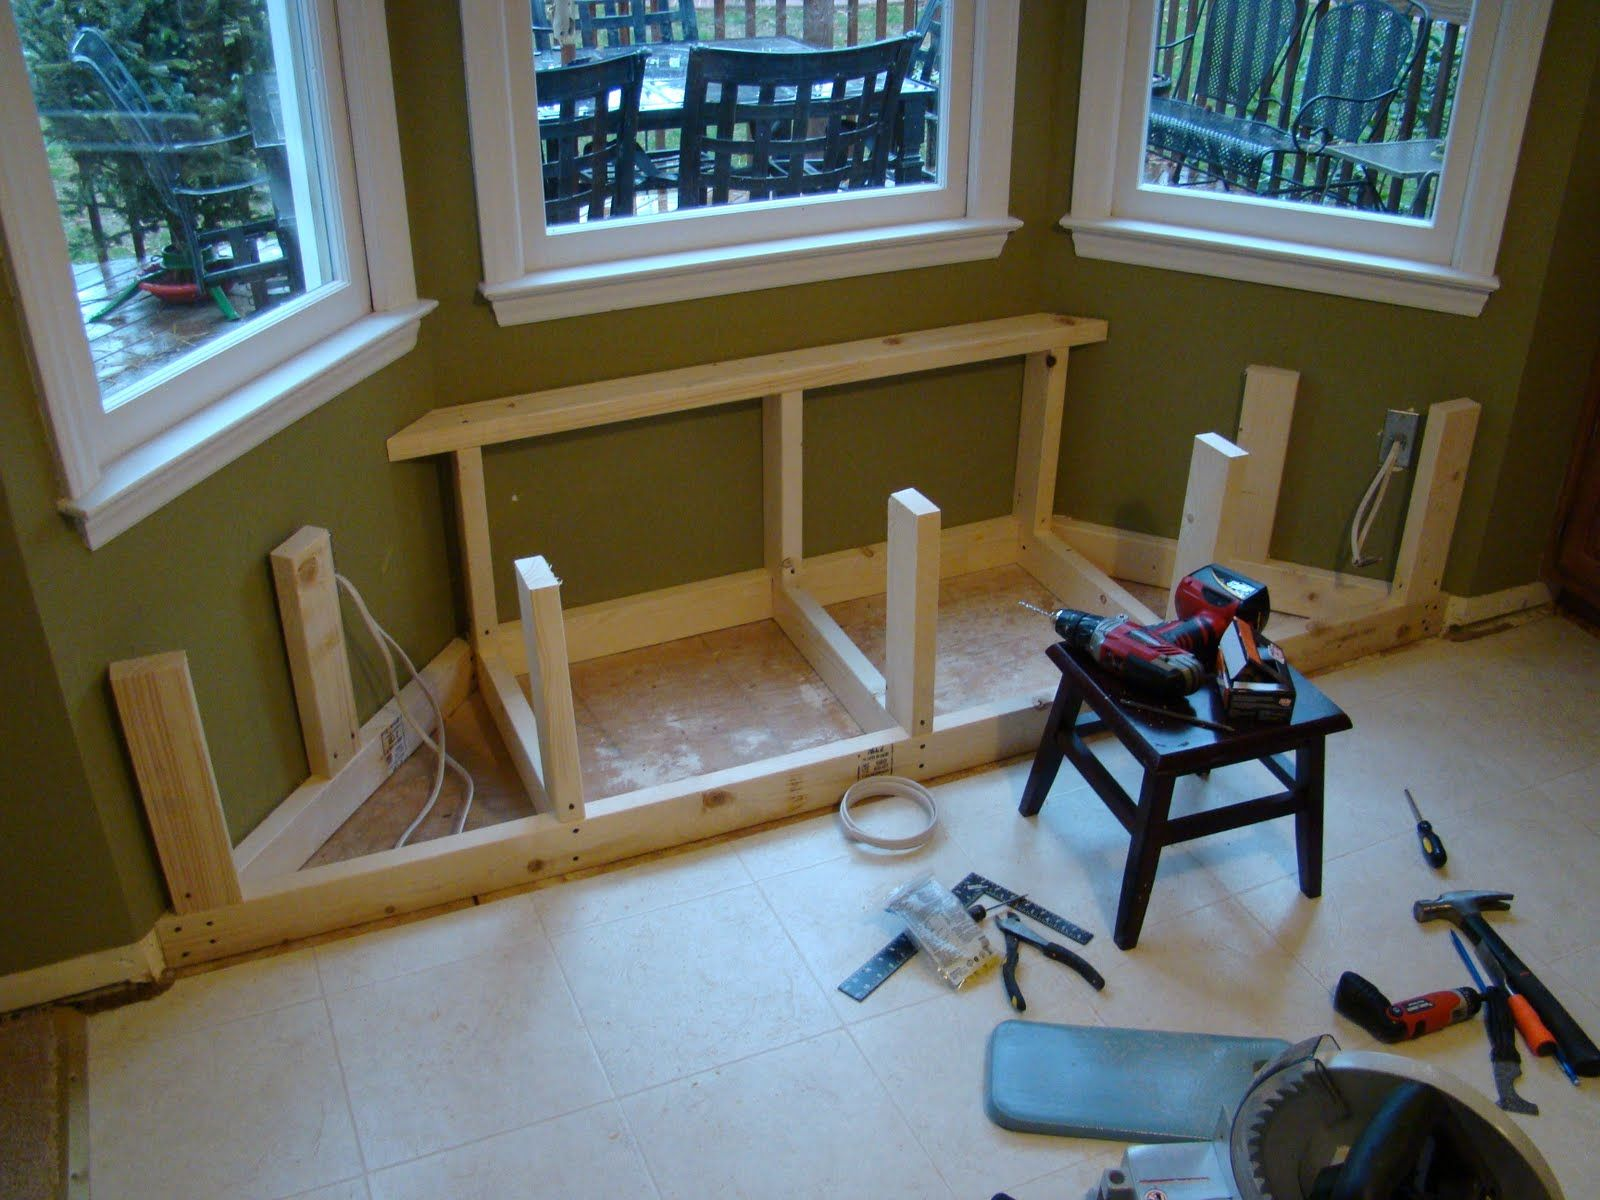 Pin By Victor On Table Saw In 2019 Window Seat Kitchen